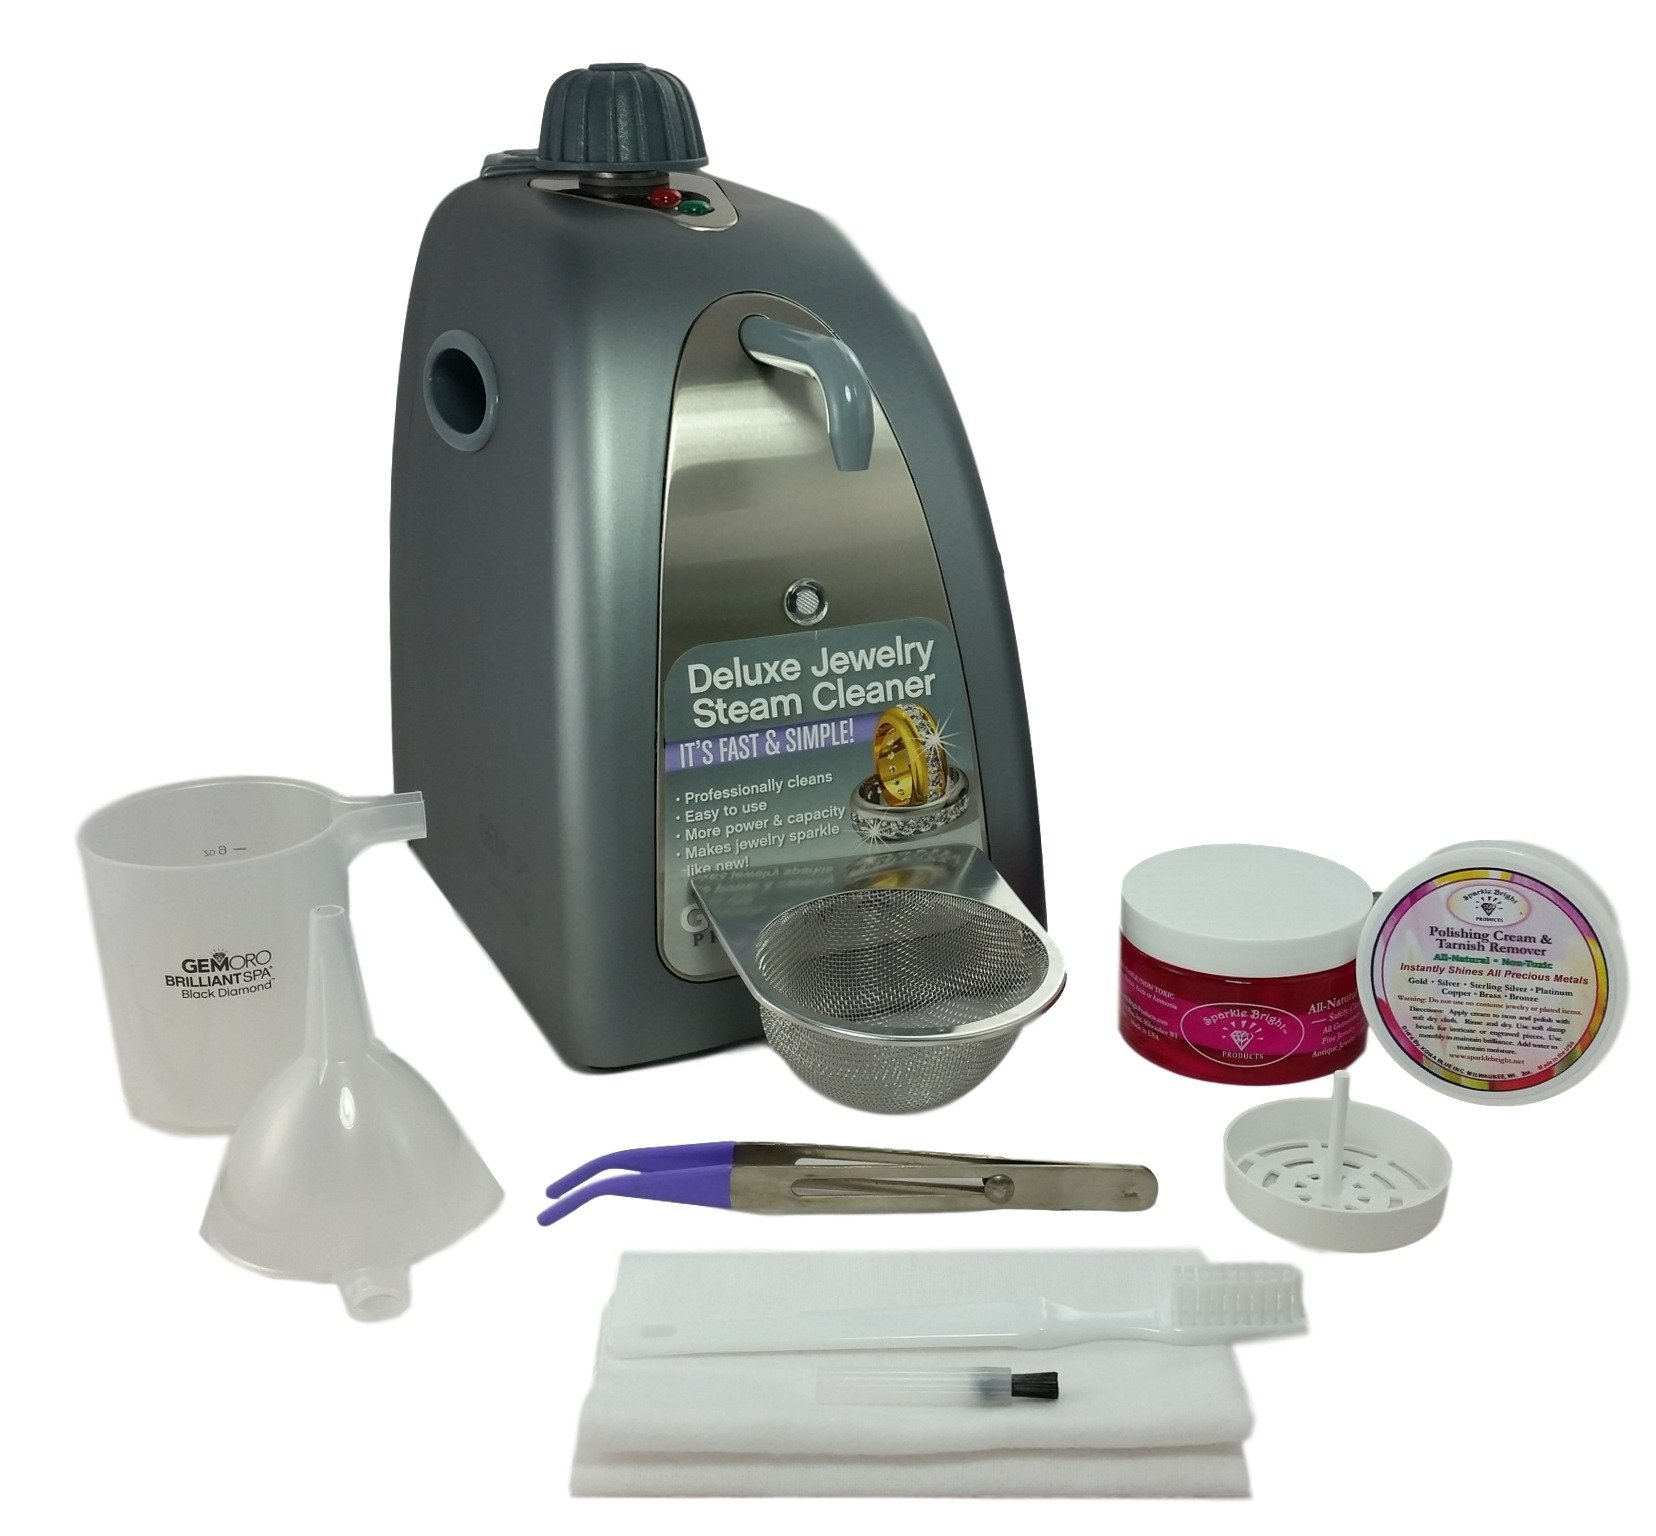 GEMORO 0375 BLACK DIAMOND BRILLIANT SPA SLATE GRAY STEAM JEWELRY CLEANING KIT Includes Sparkle Bright Products Jewelry Cleaner Kit